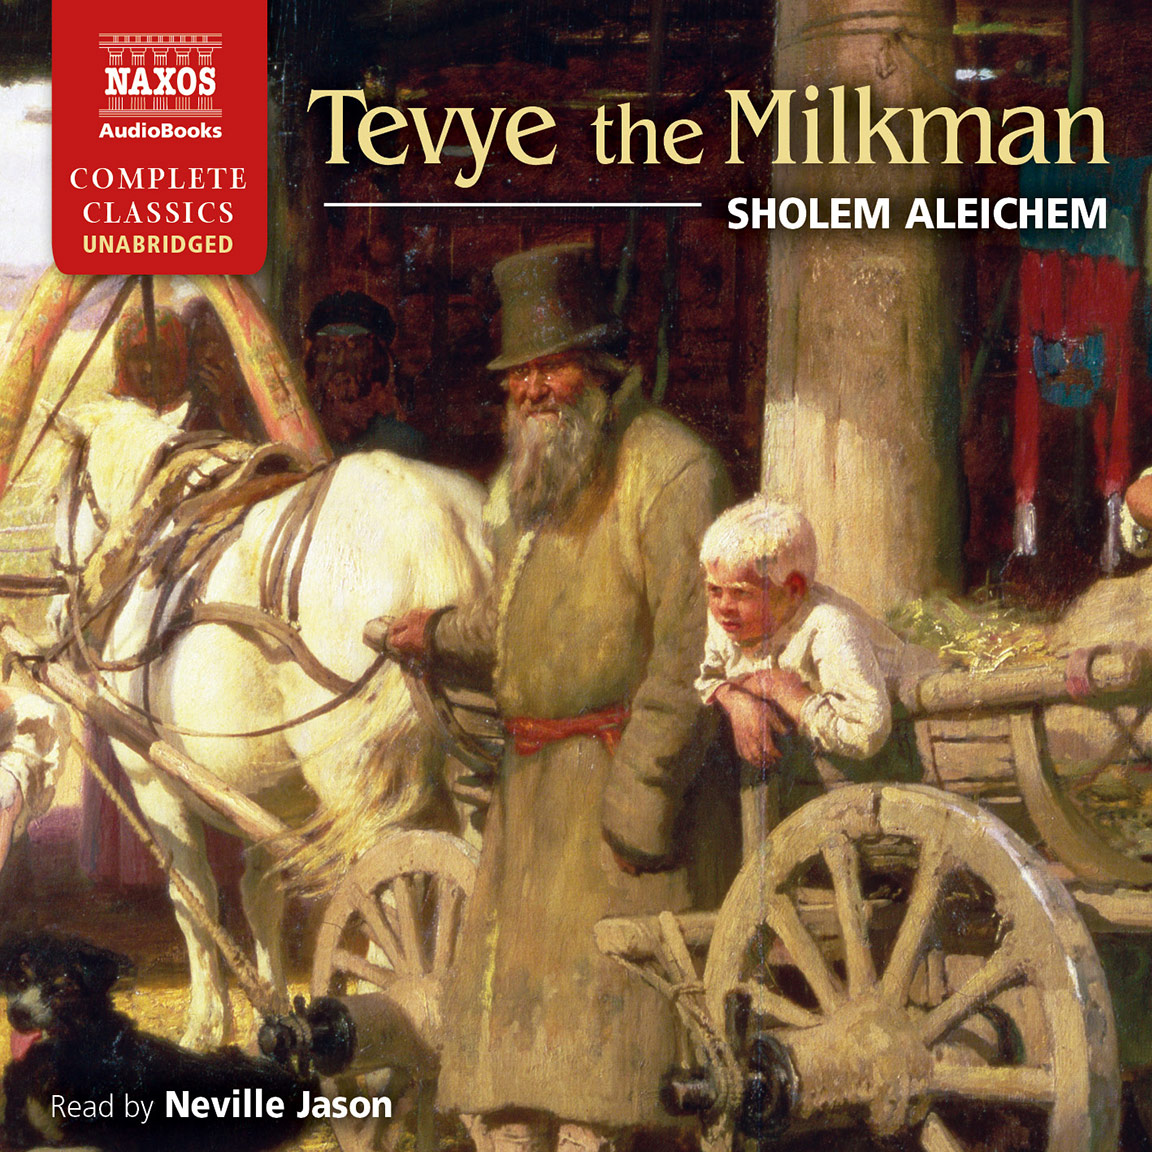 Tevye the Milkman (unabridged)